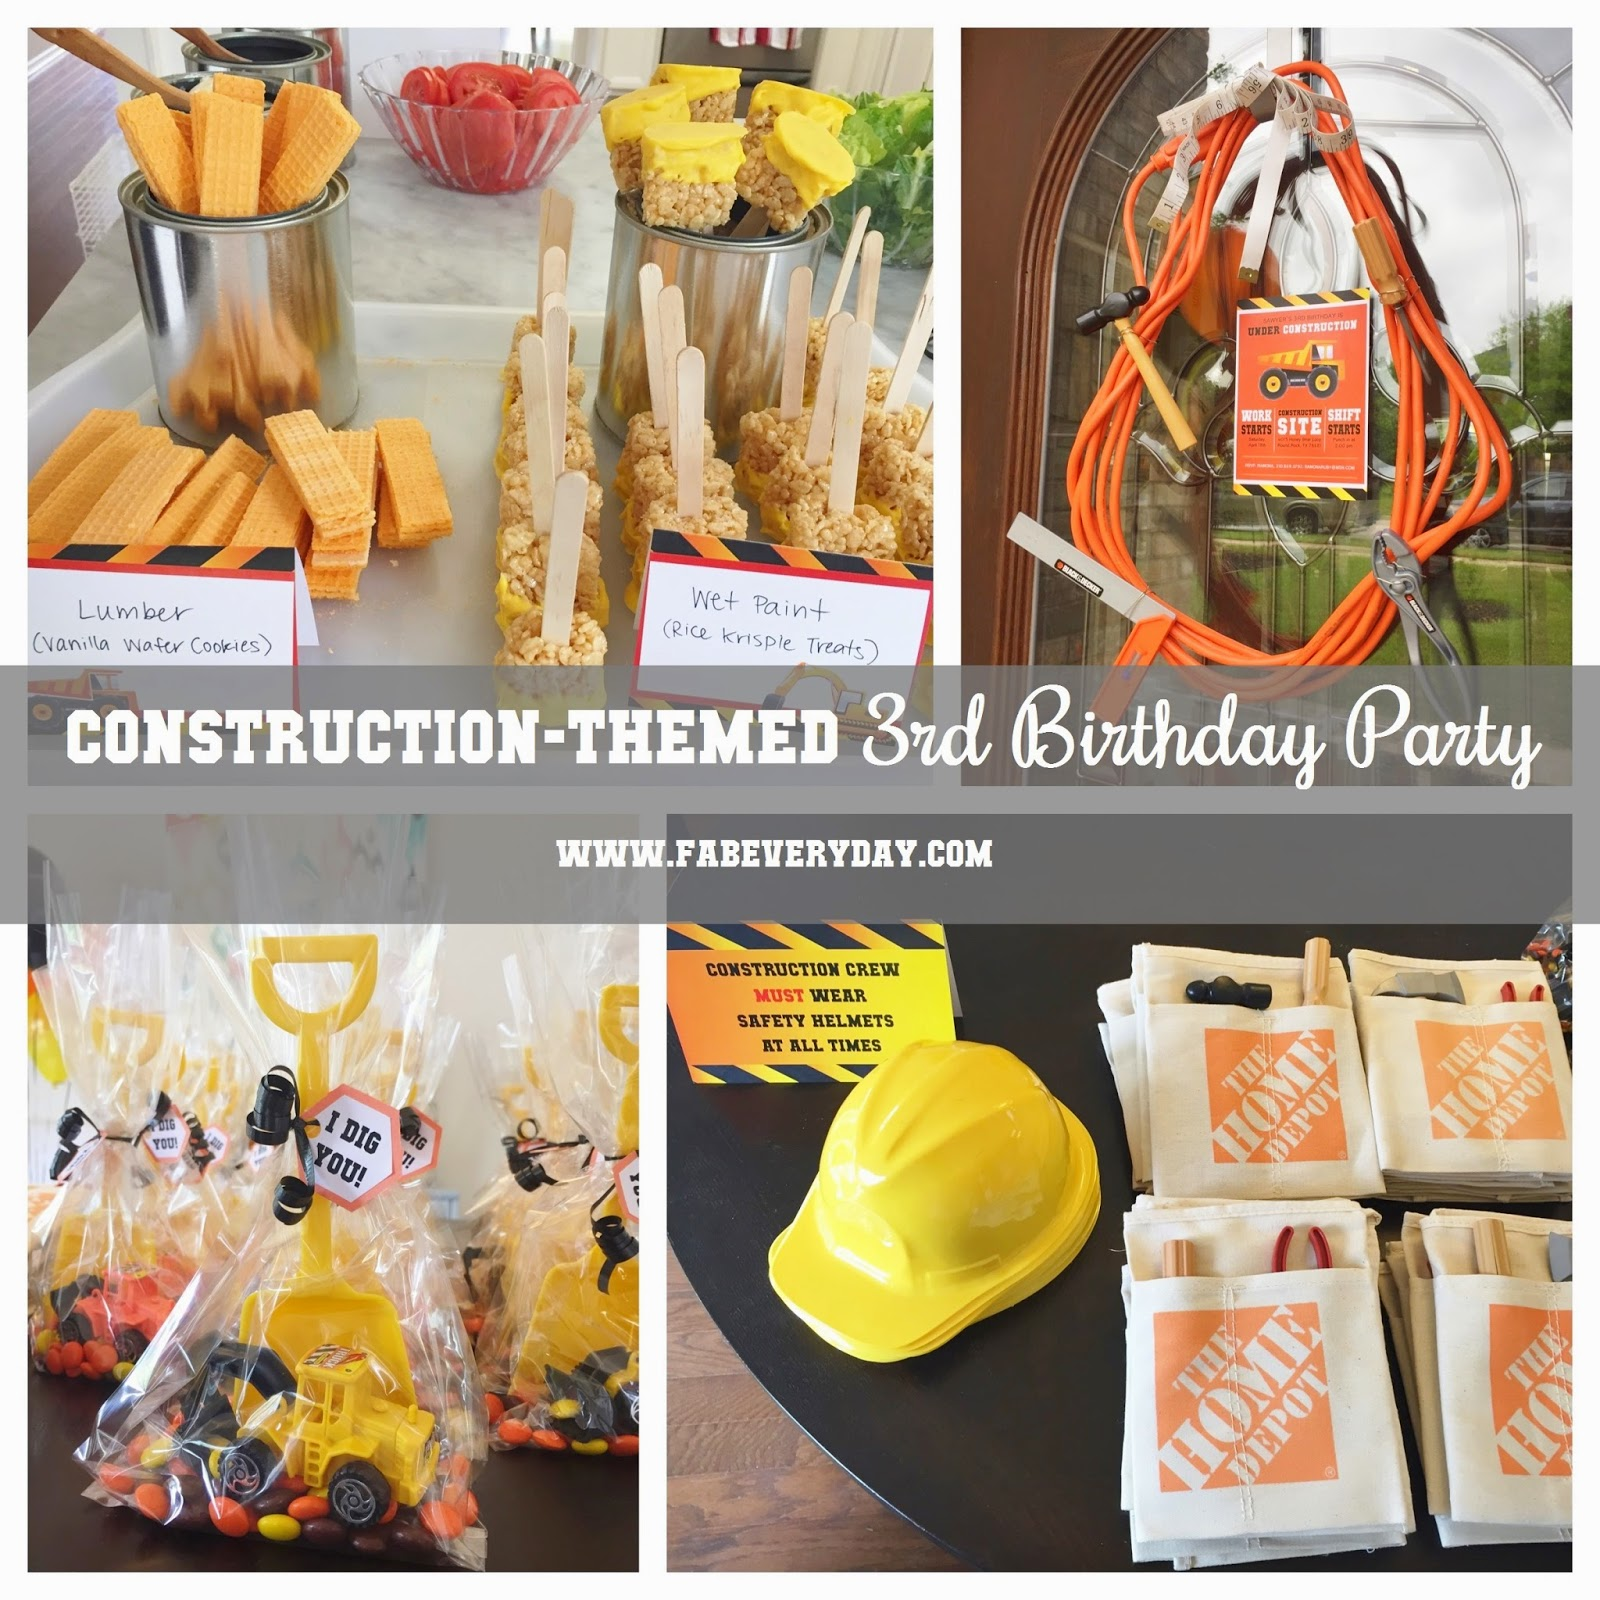 Construction Birthday Party Food Ideas: Because Everyday Life Should Be Fabulous